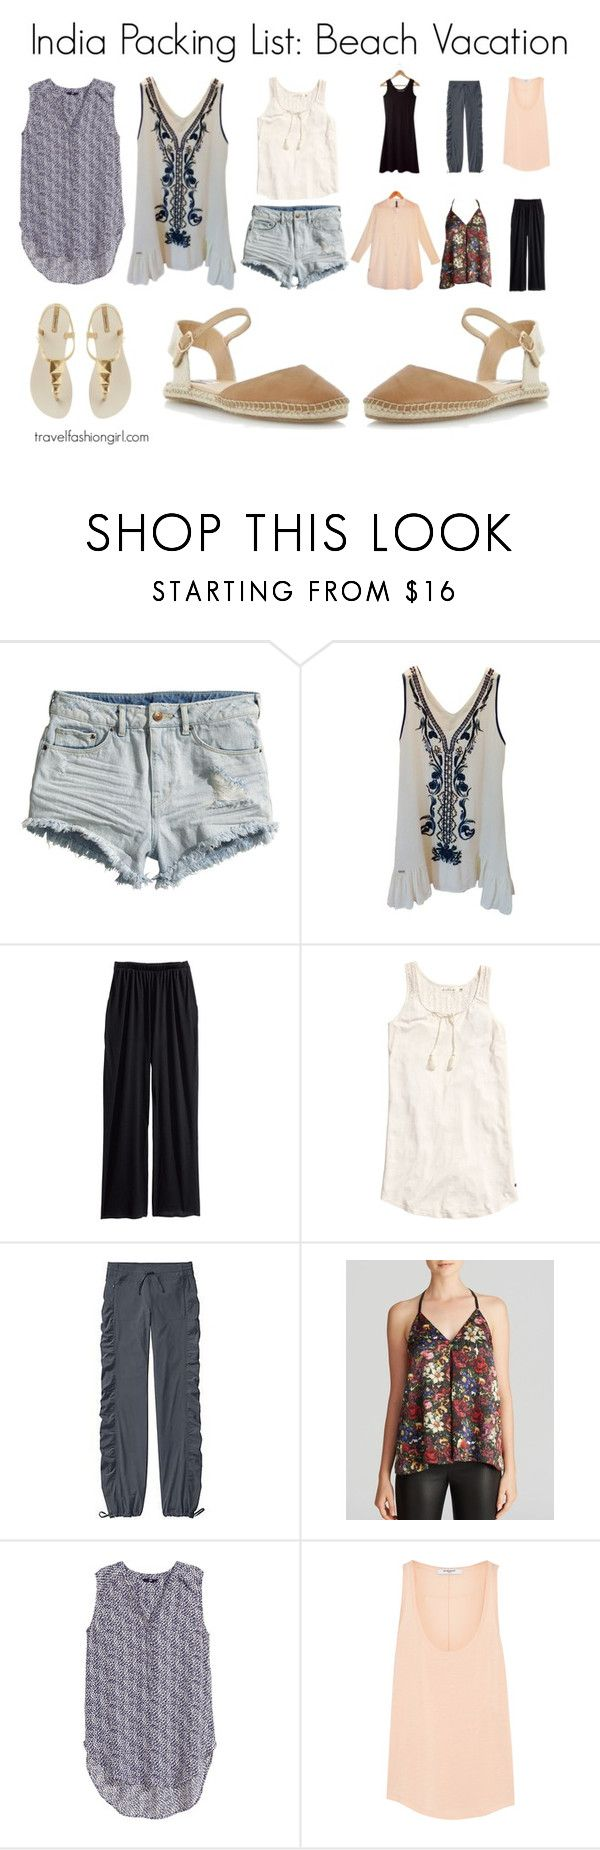 """India Packing List: Beach Vacation"" by travelfashiongirl ❤ liked on Polyvore featuring H&M, Alice + Olivia and Givenchy"